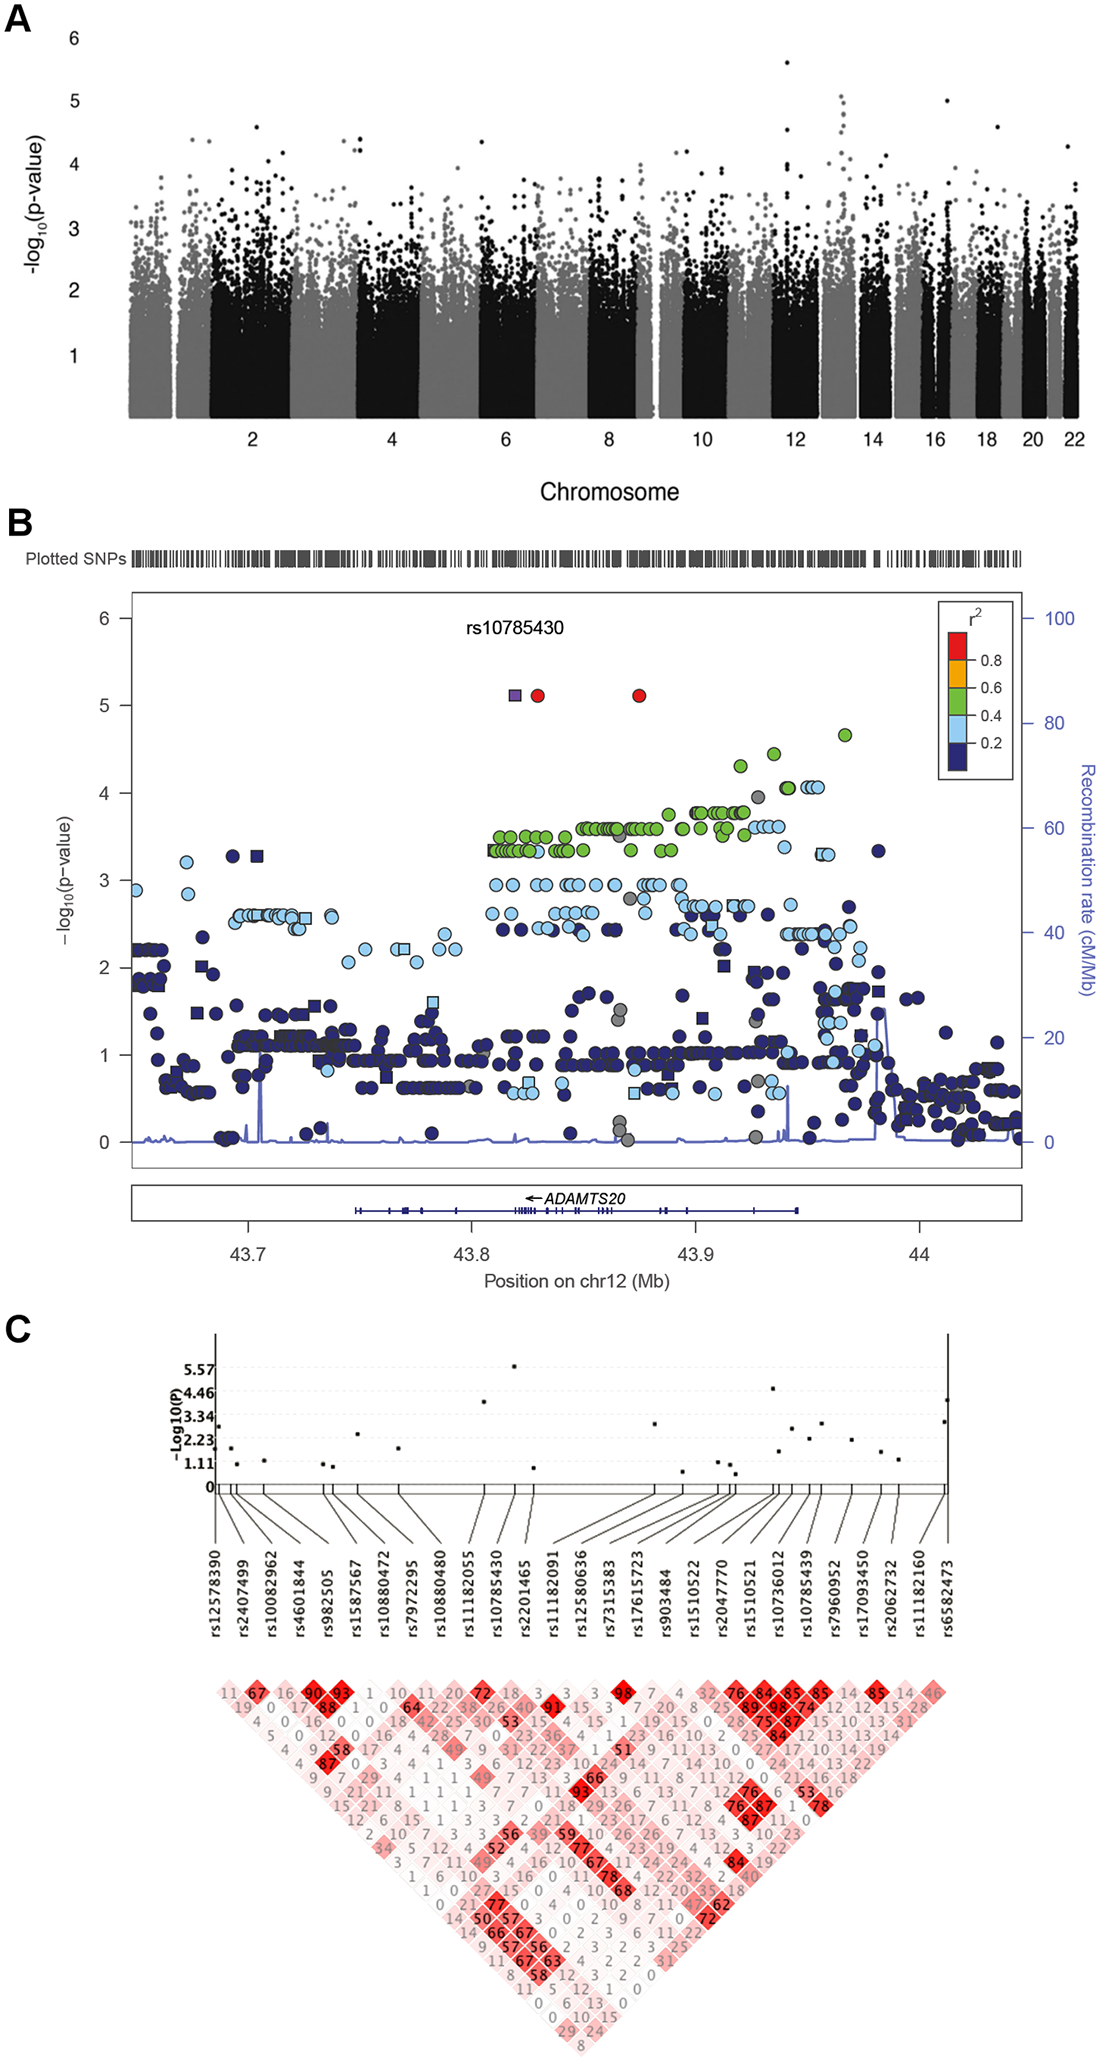 Genetic association results for CL/P in Guatemalans.